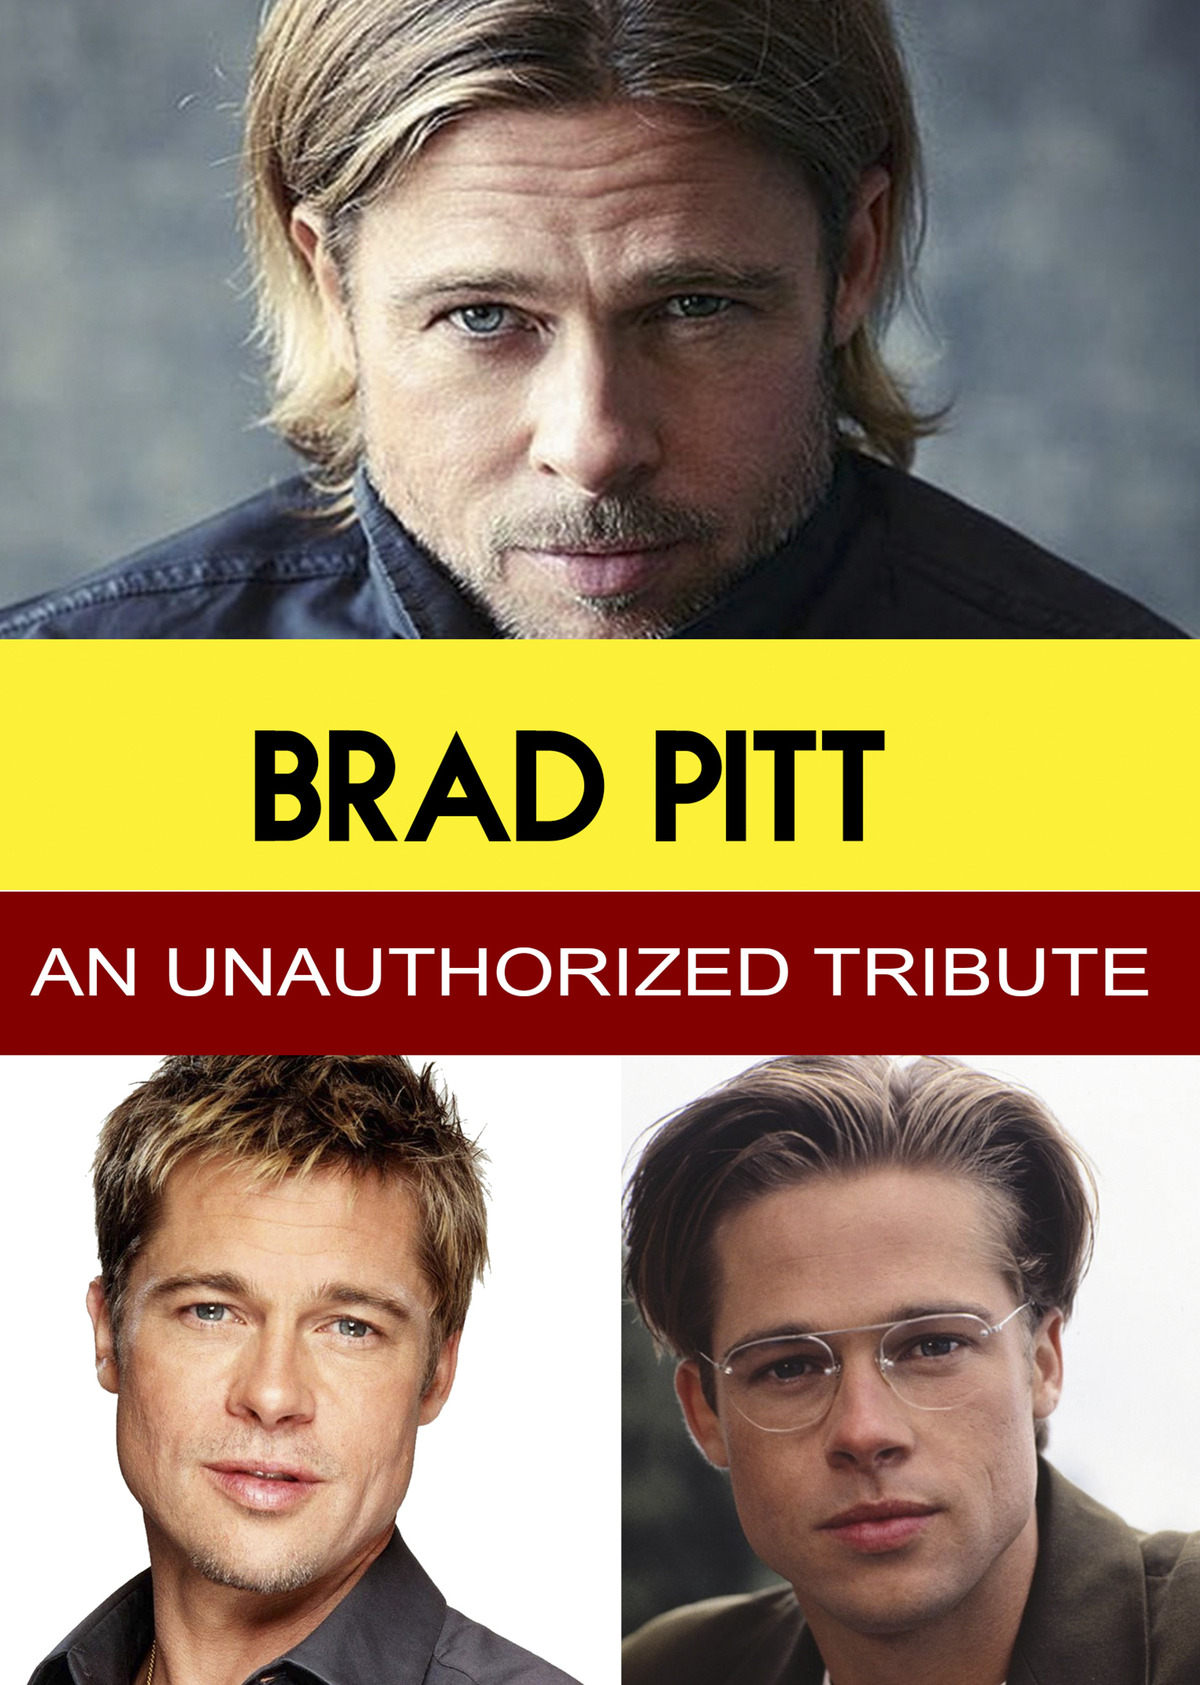 L7829 - Brad Pitt - An Unauthorized Tribute